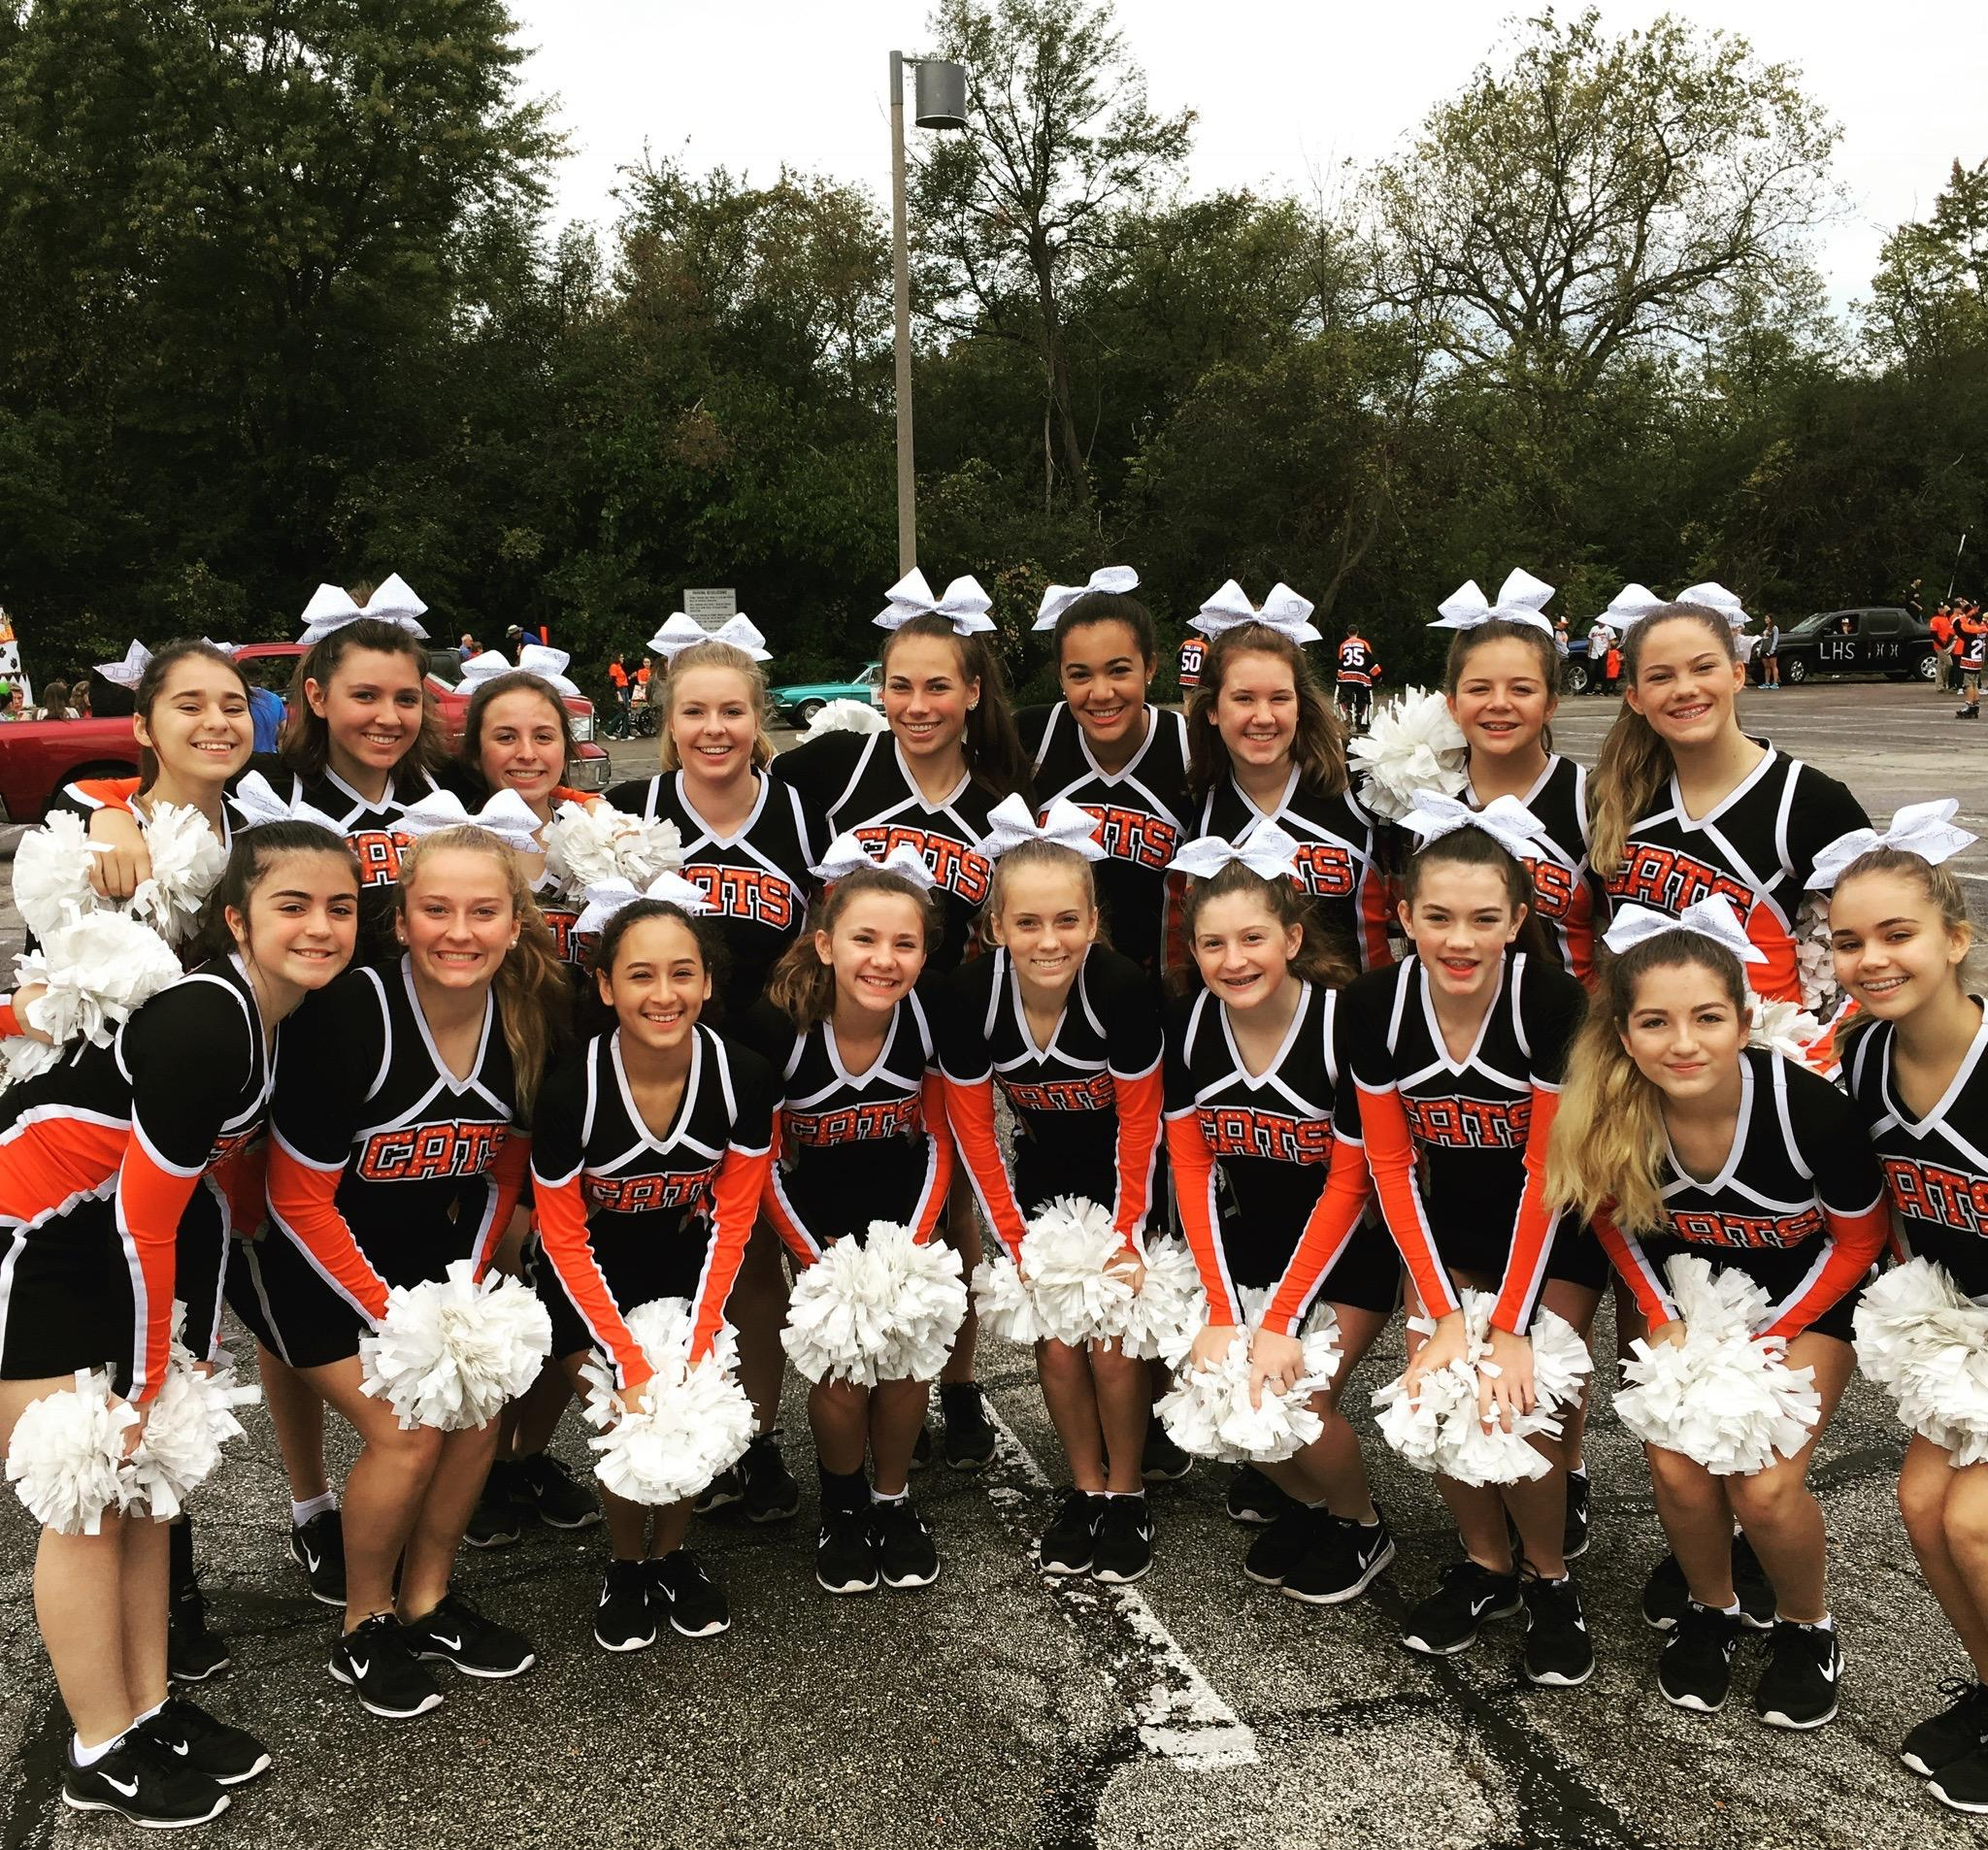 JV team photo before marching in parade